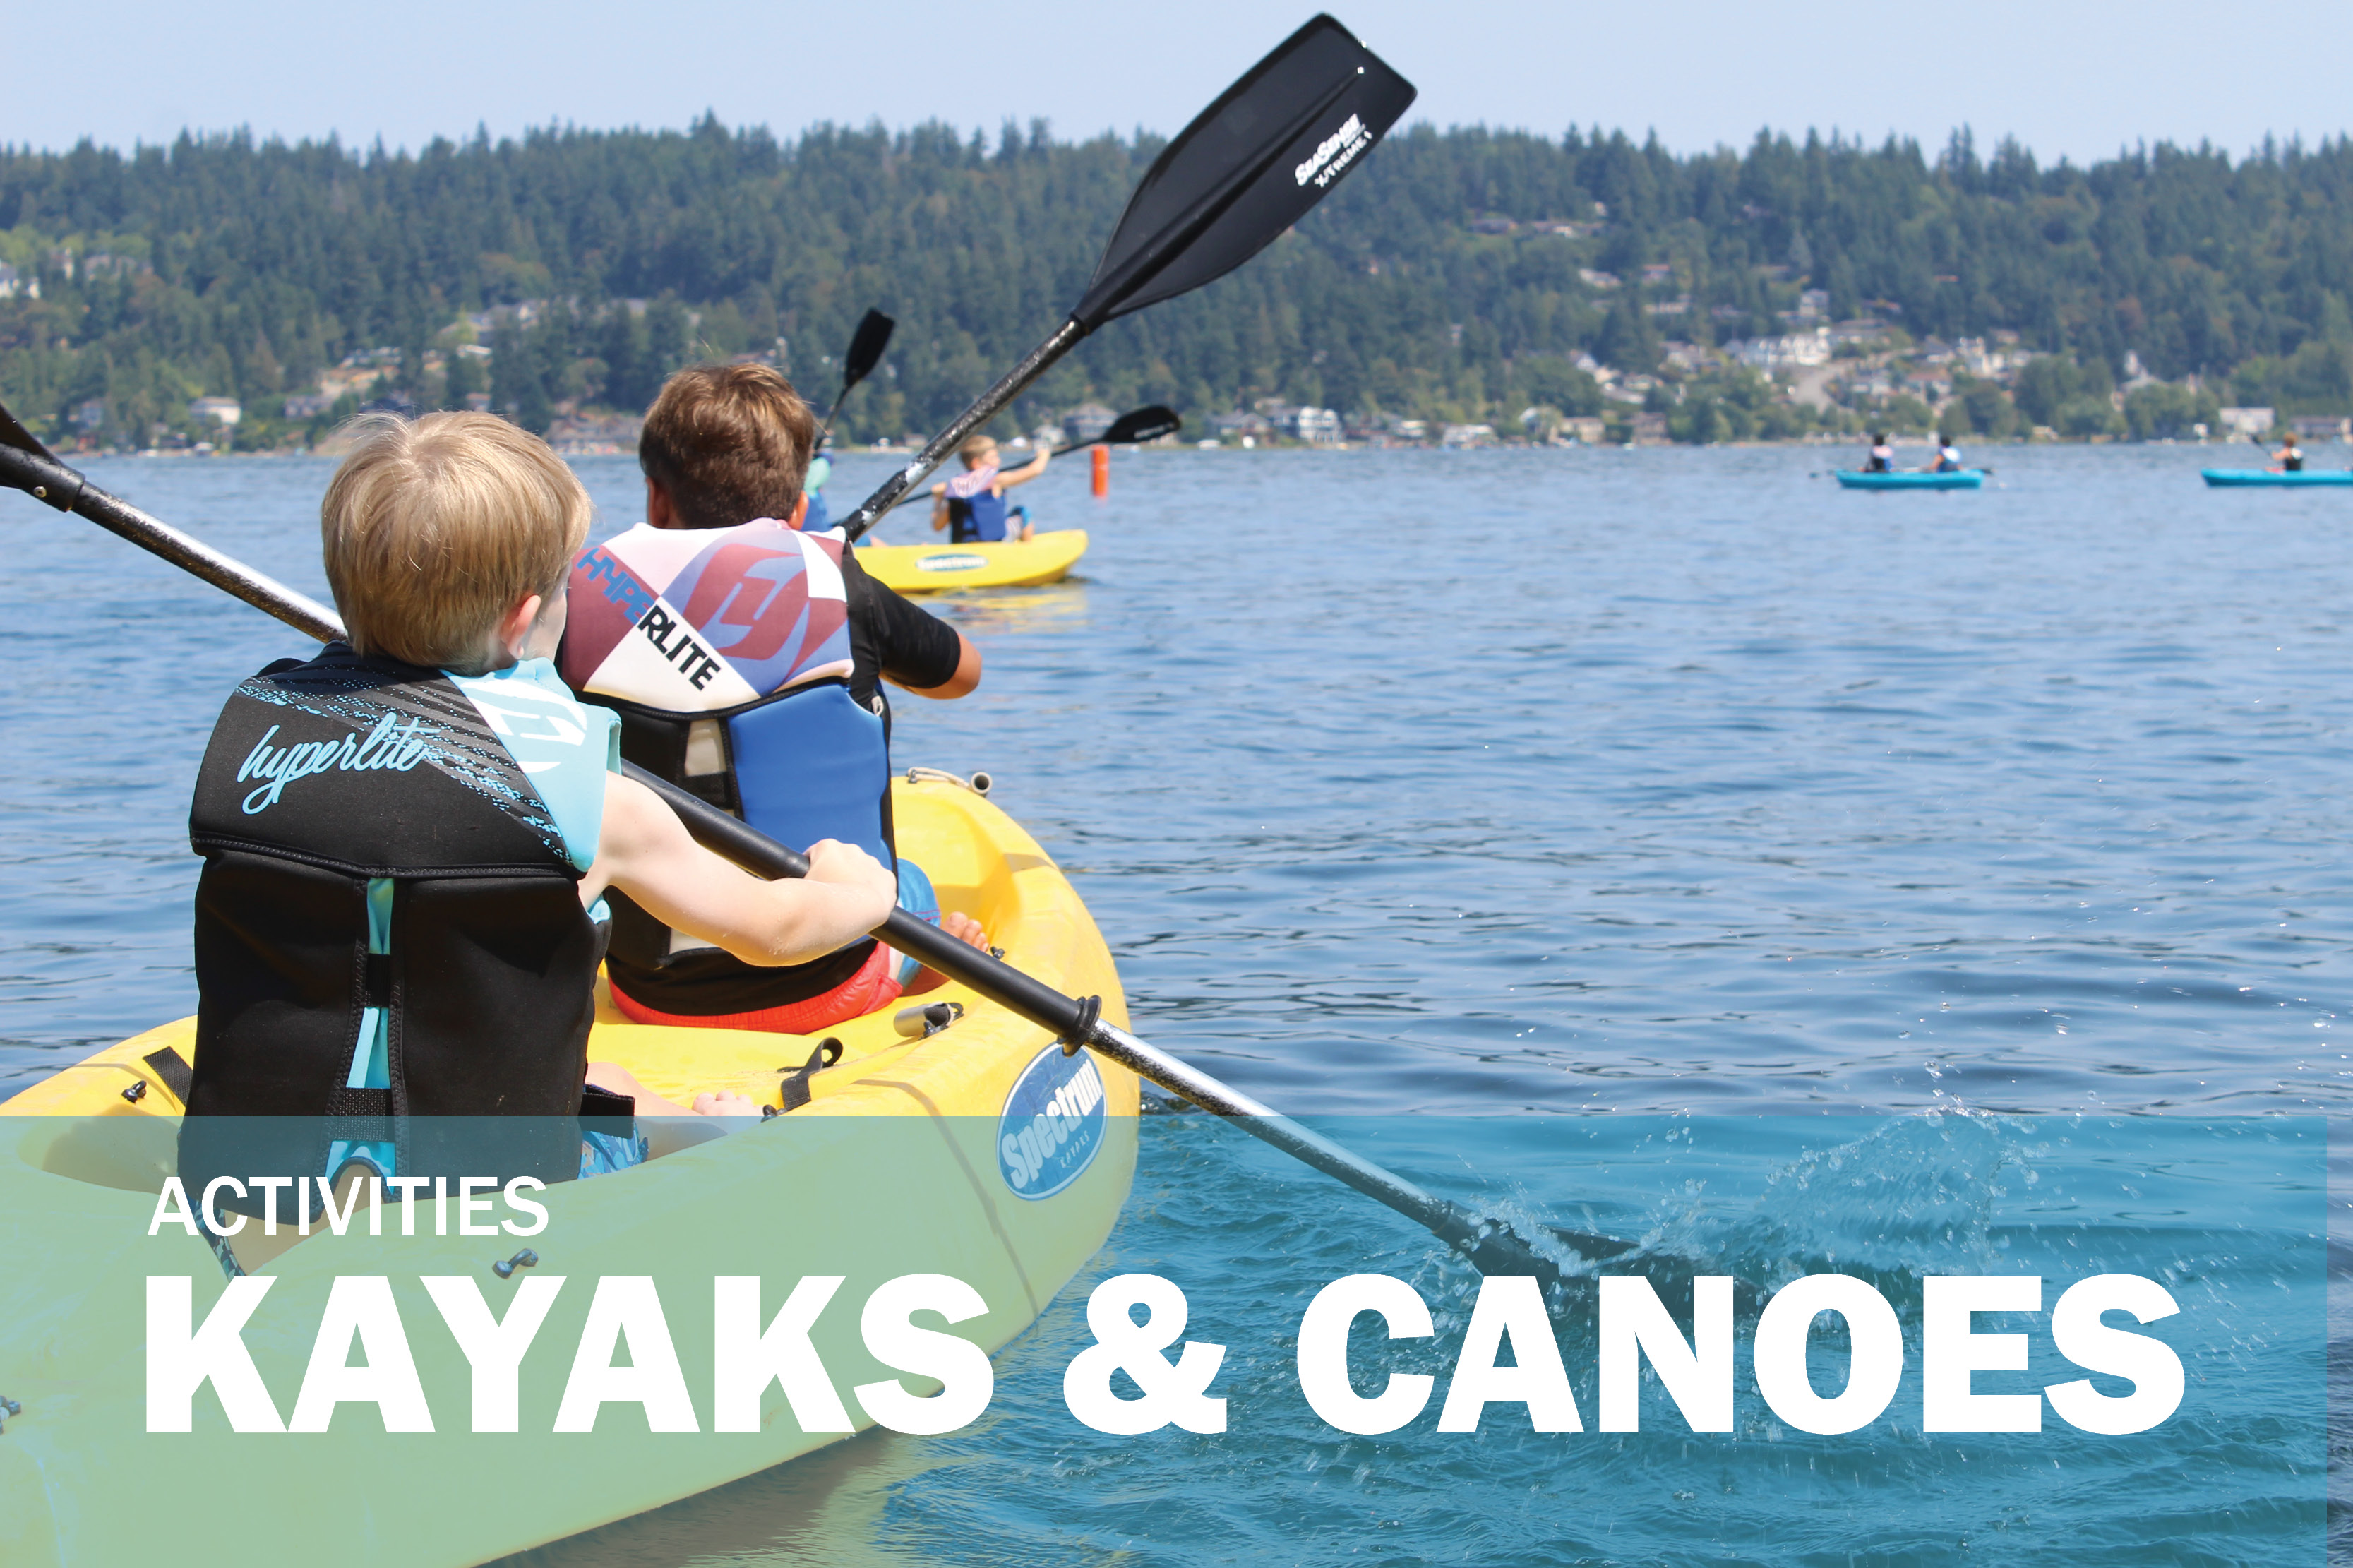 Kayaks & Canoes